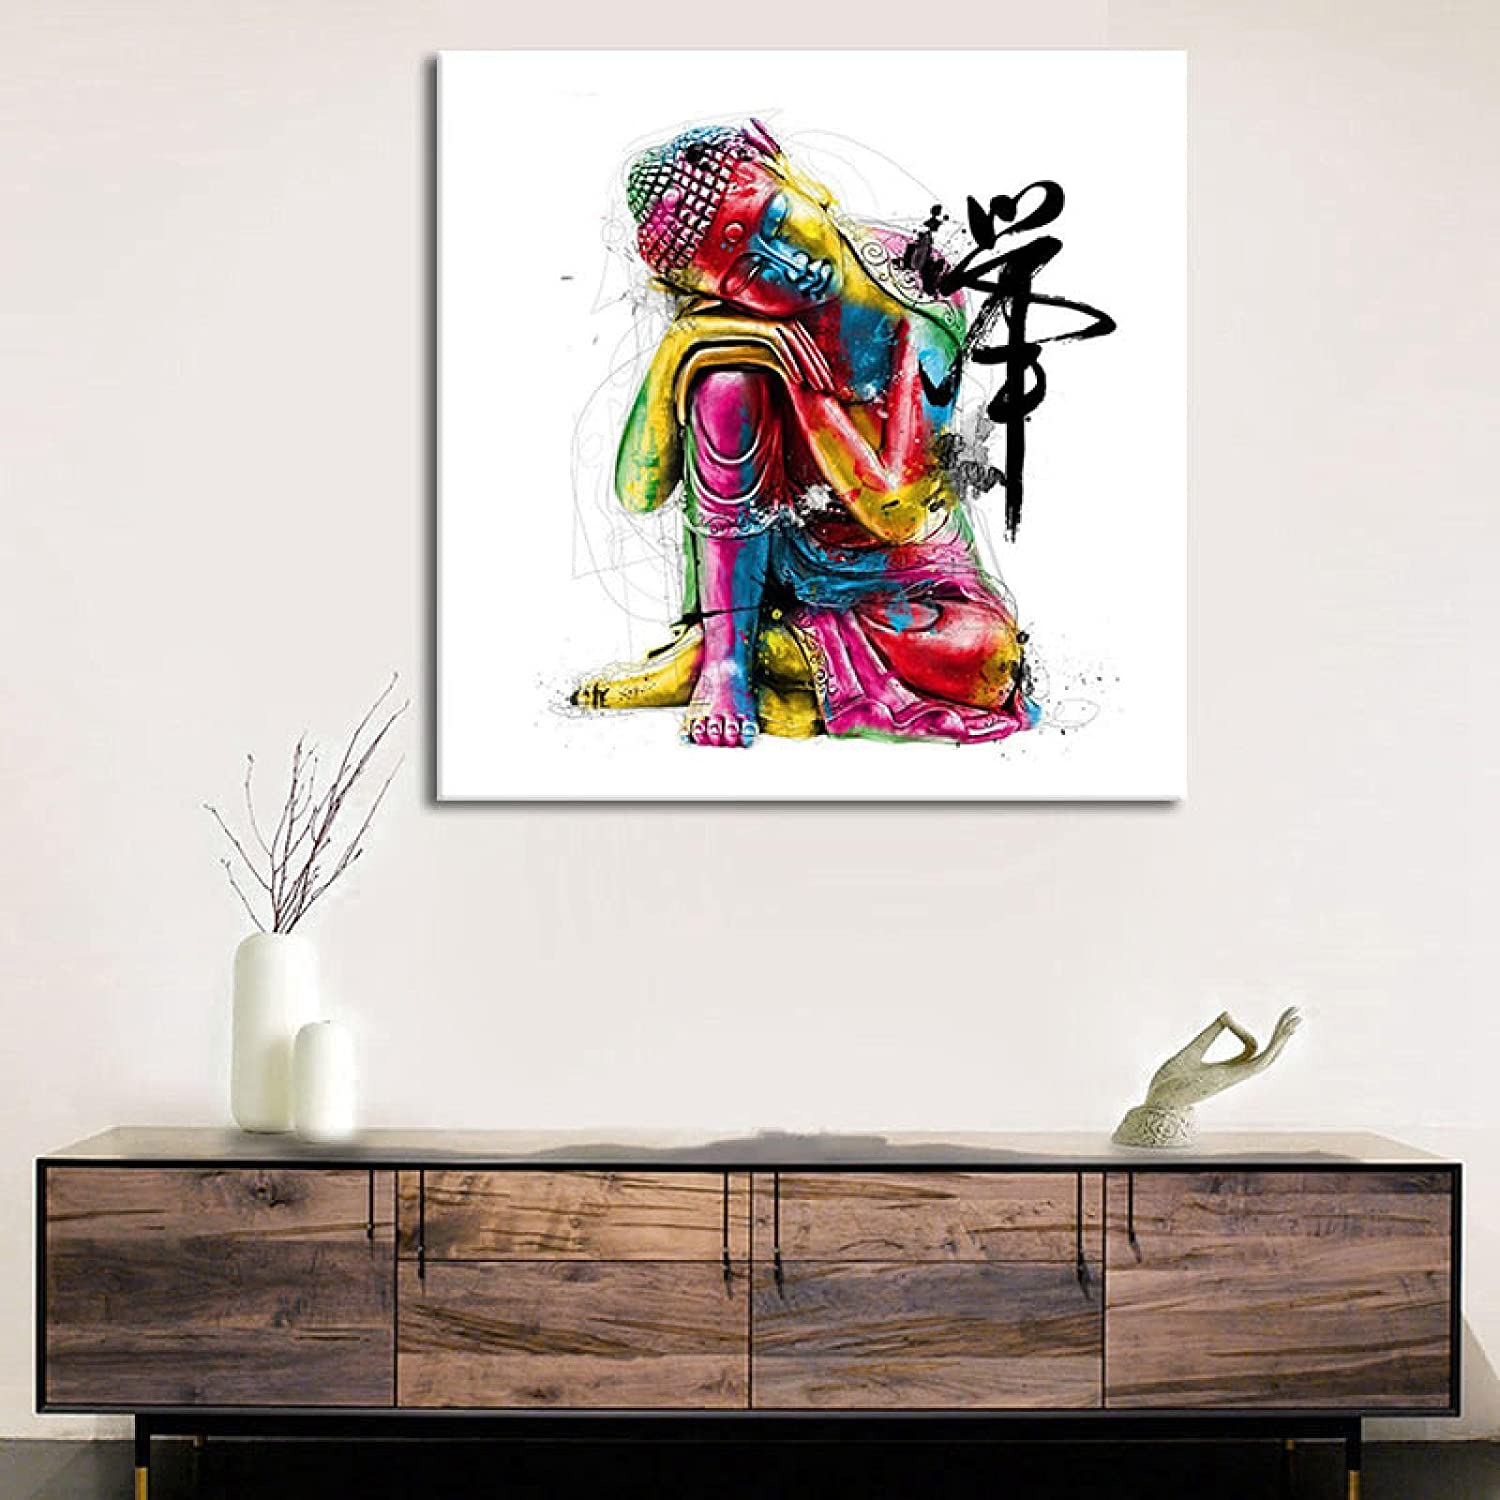 wholesale Canvas Painting Modern Posters Zen Wall A Chicago Mall Prints Buddha Abstract